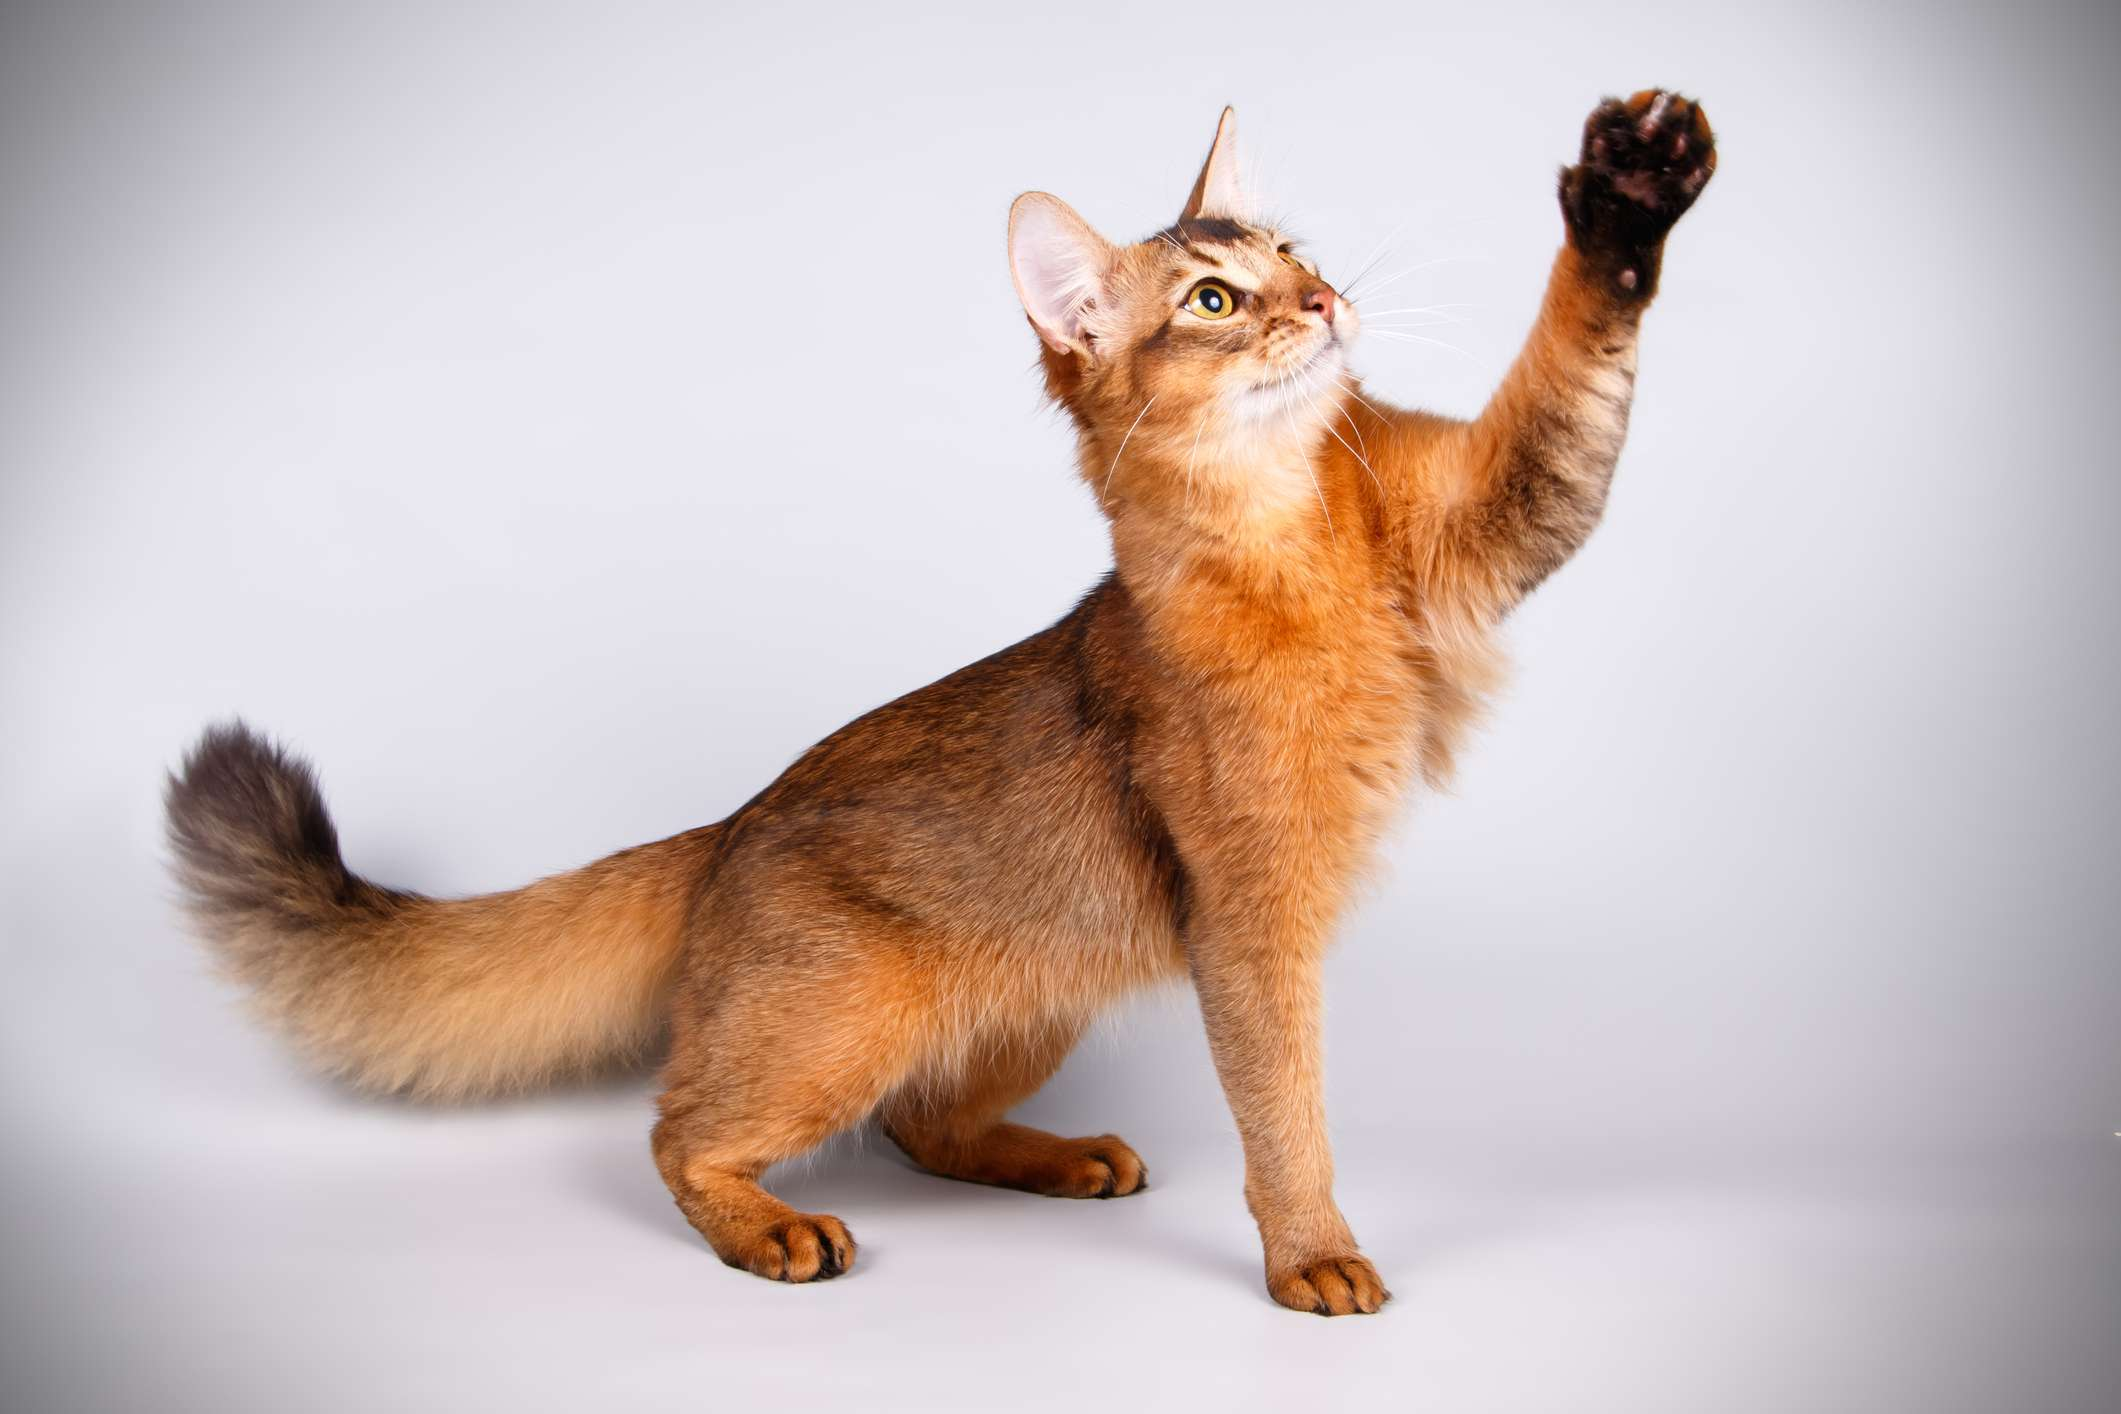 Somali cat reaching into air with its front paw.